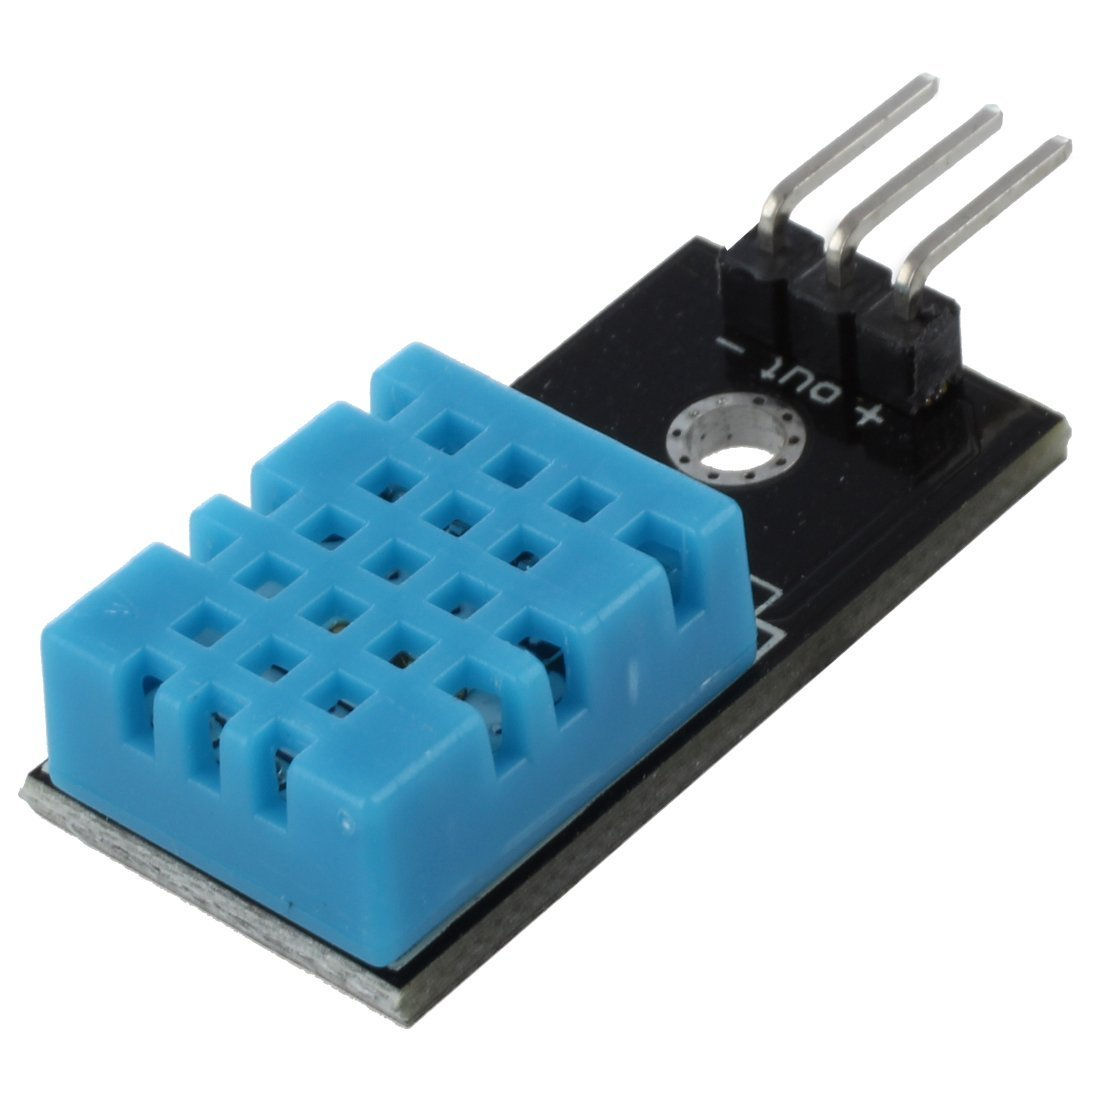 SODIAL(R) DHT11 DHT-11 Digital Humidity Temperature Sensor Probe Moudle For Arduino PIC